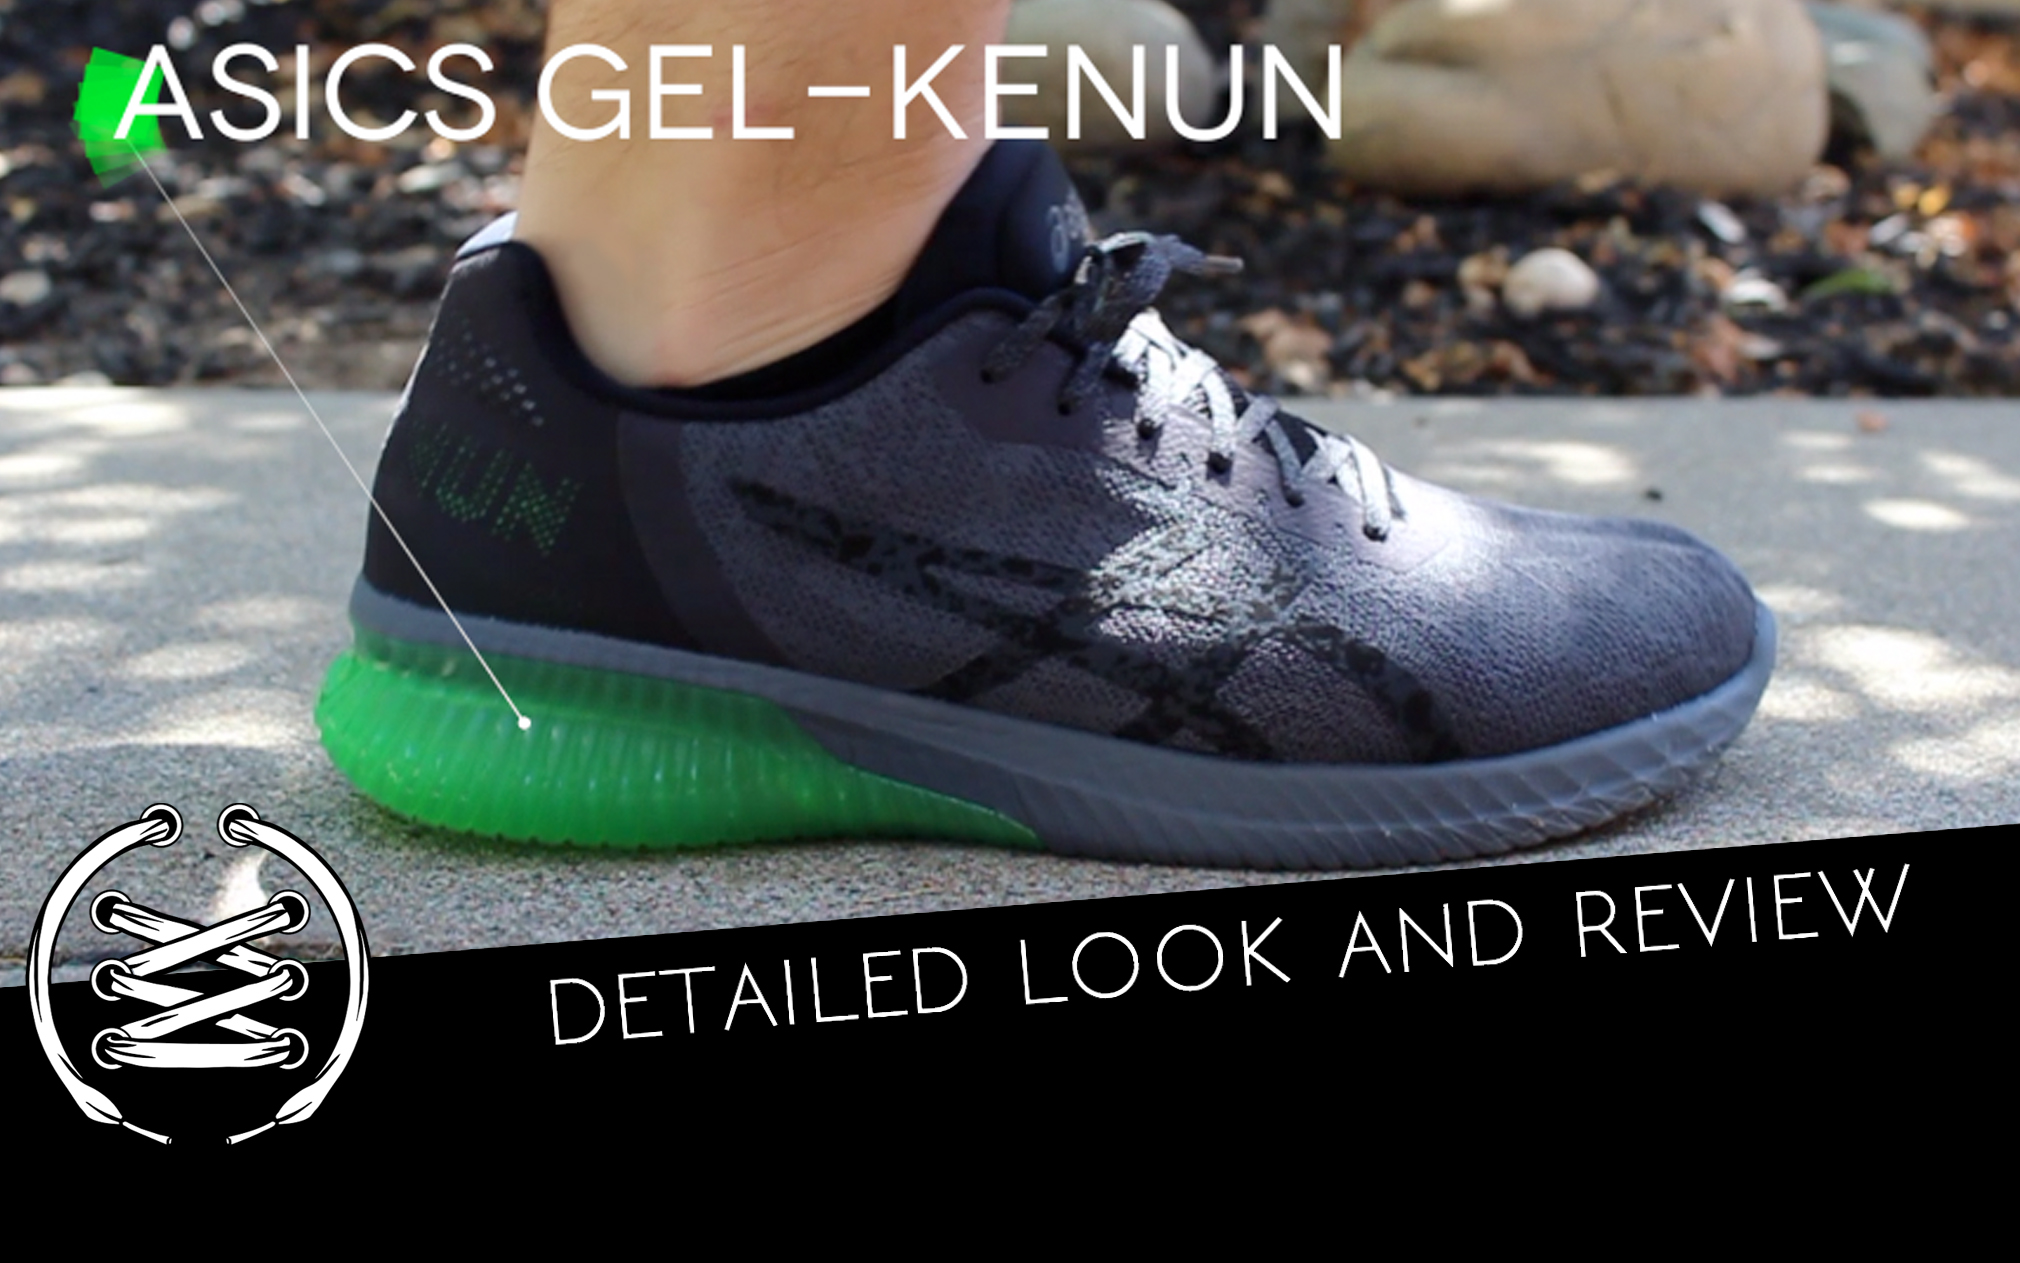 Asics Gel-Kenun | Detailed Look and Review - WearTesters